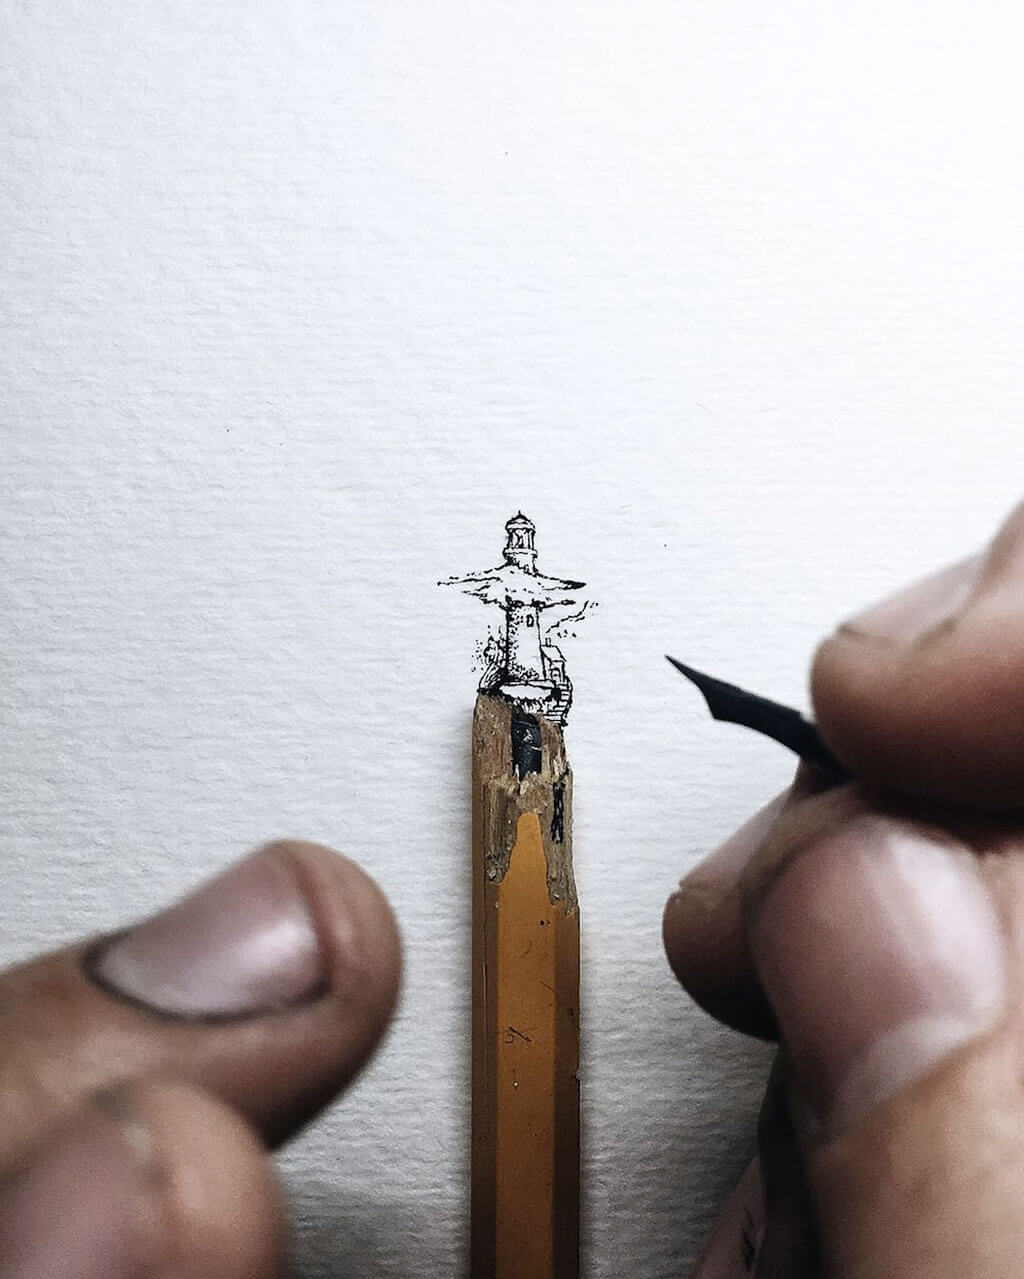 Tiny illustrations by Christian Watson